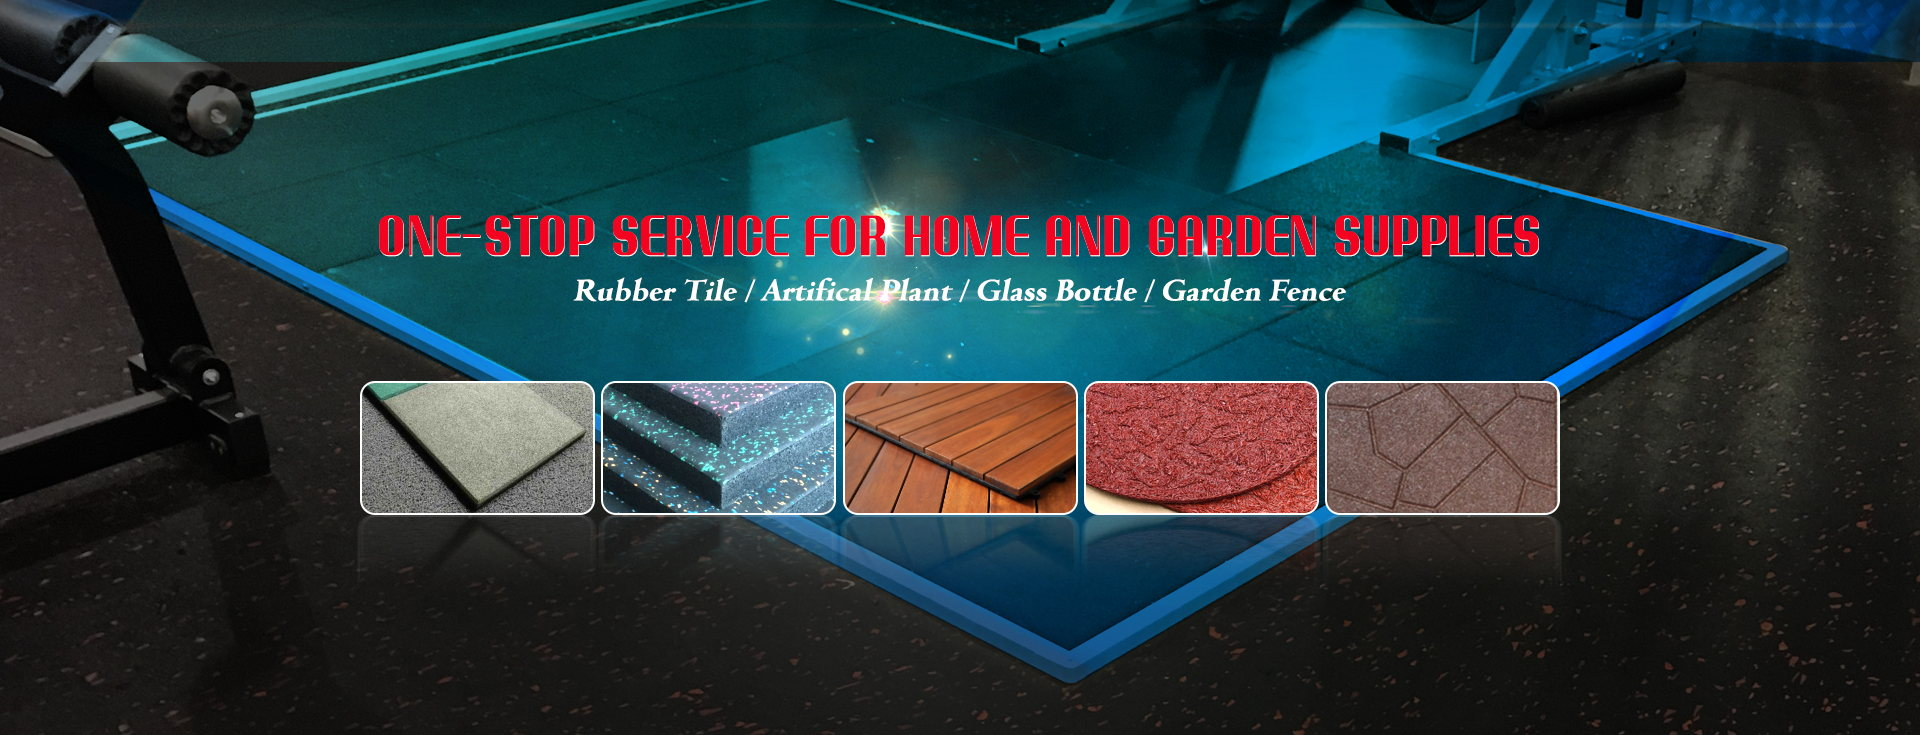 Rubber Tile / Artifical Plant / Garden Fence